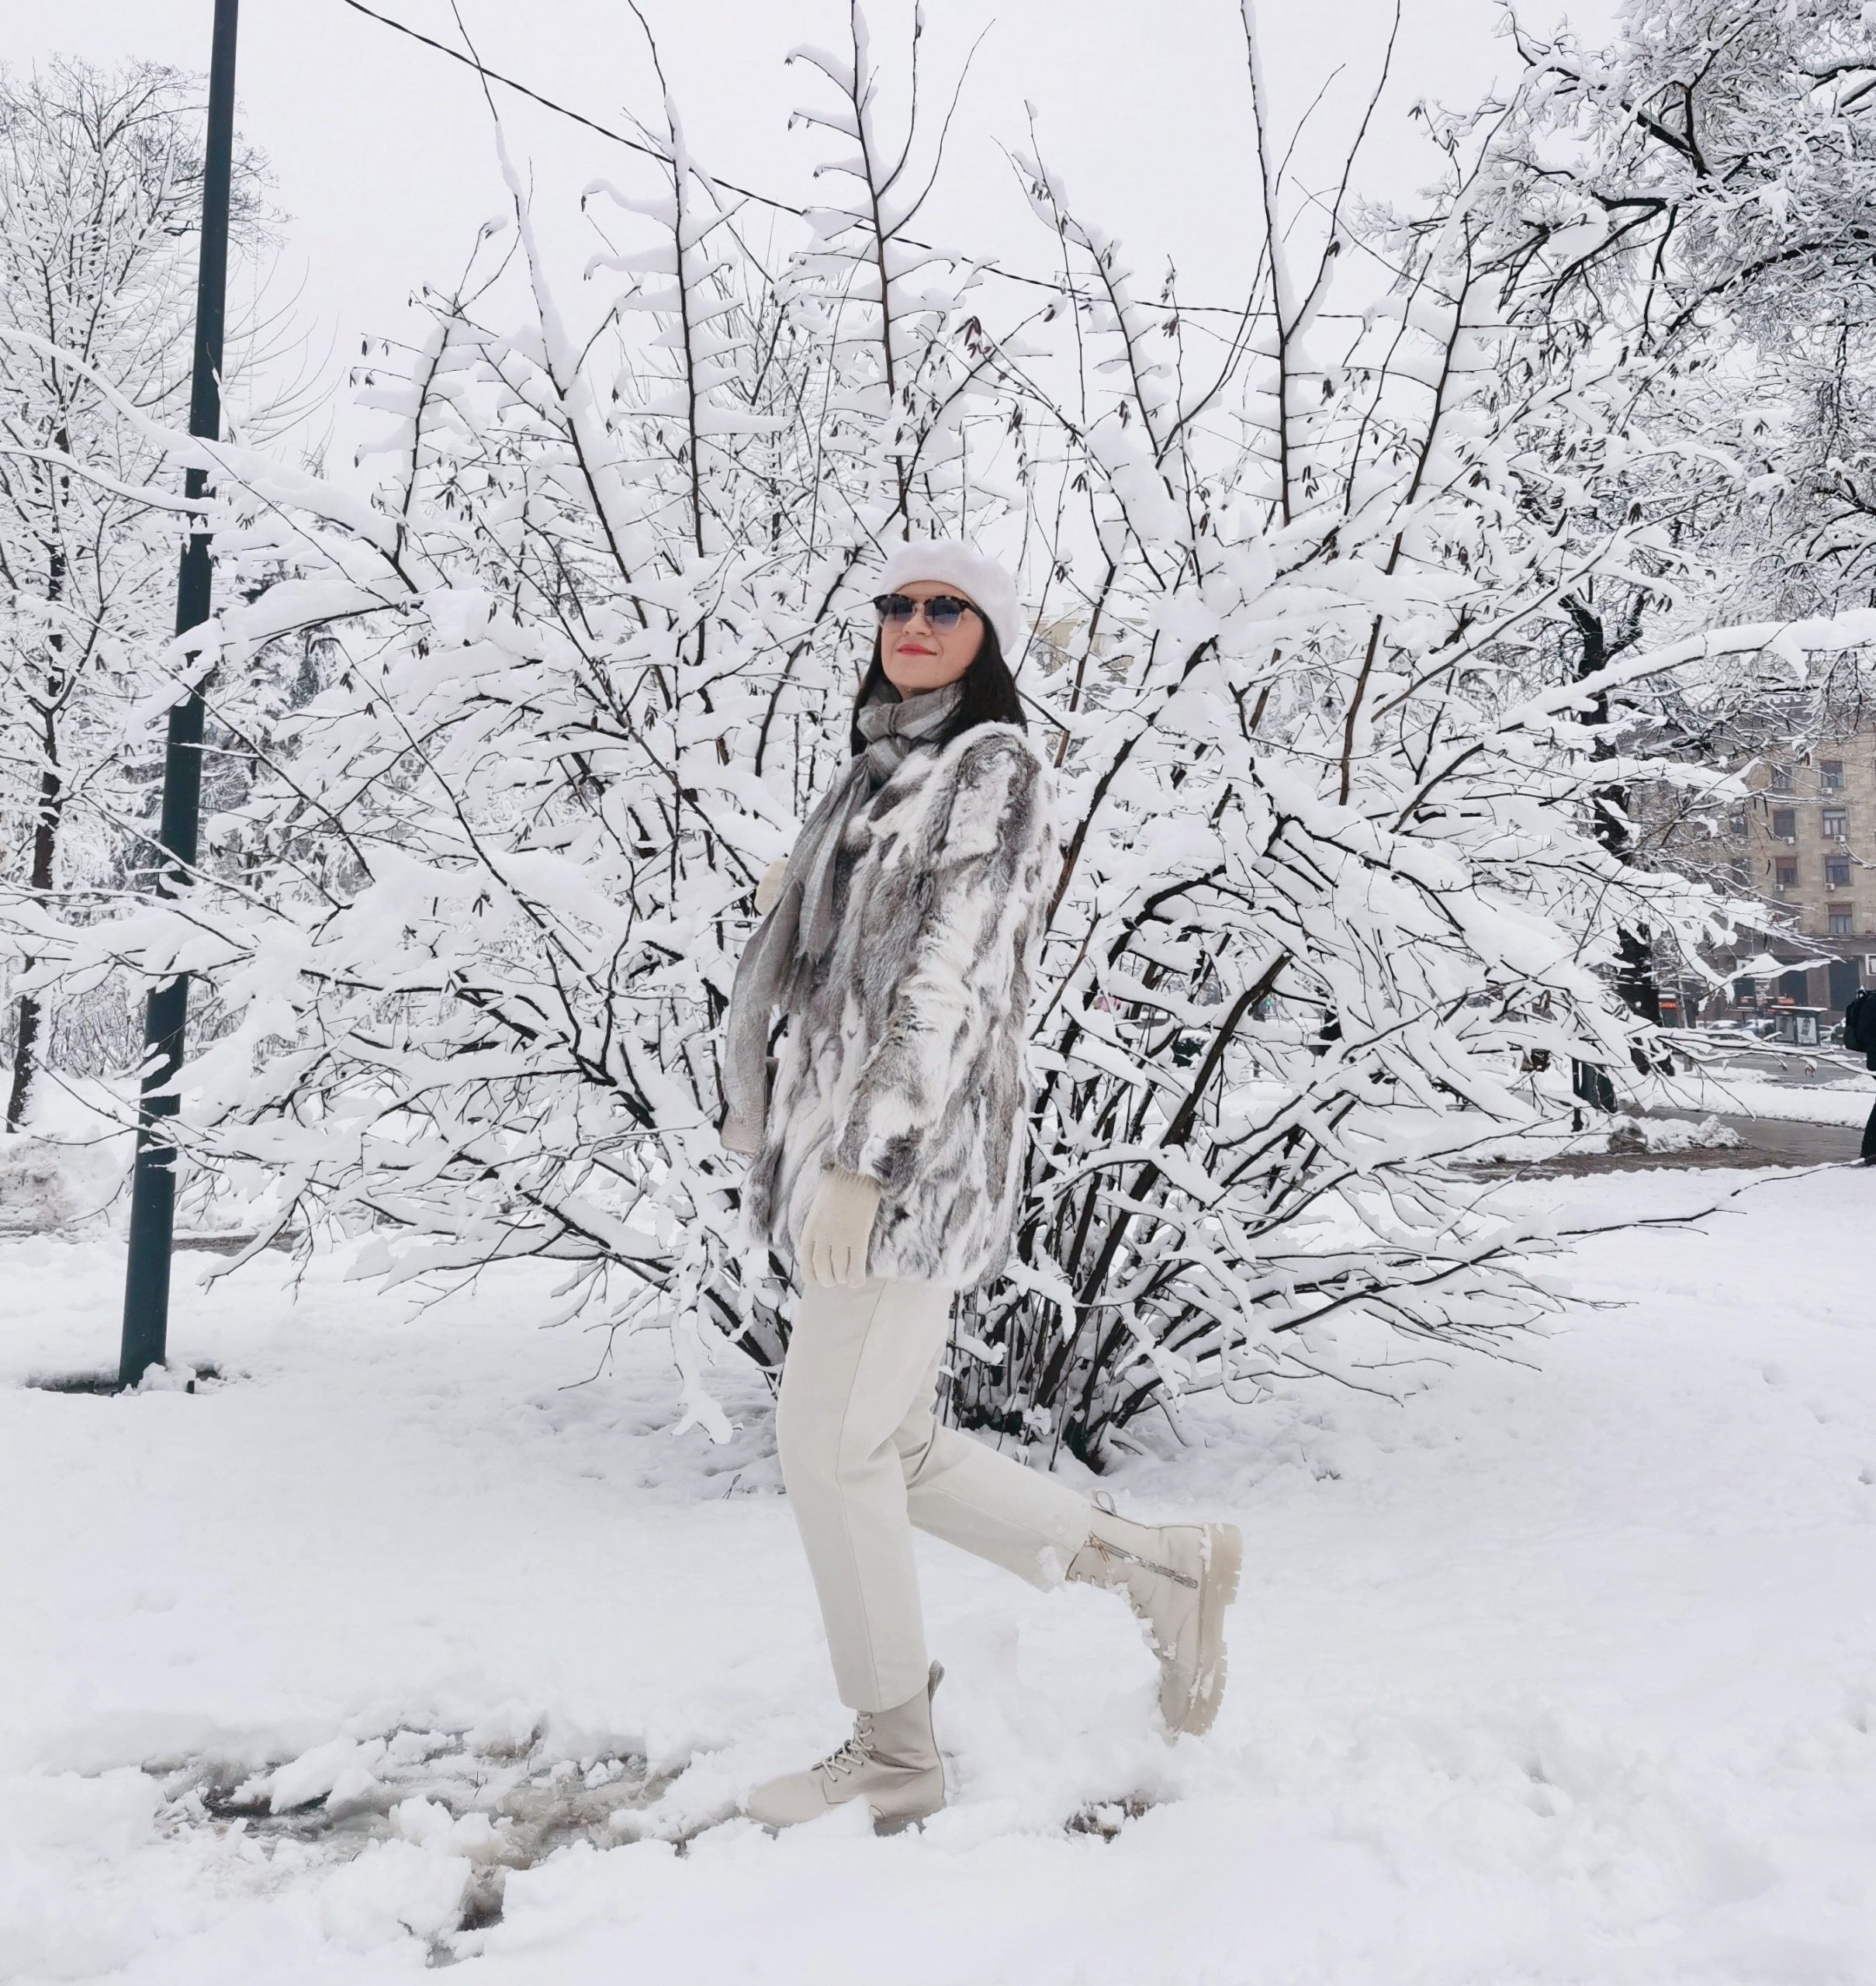 chic style in the snow